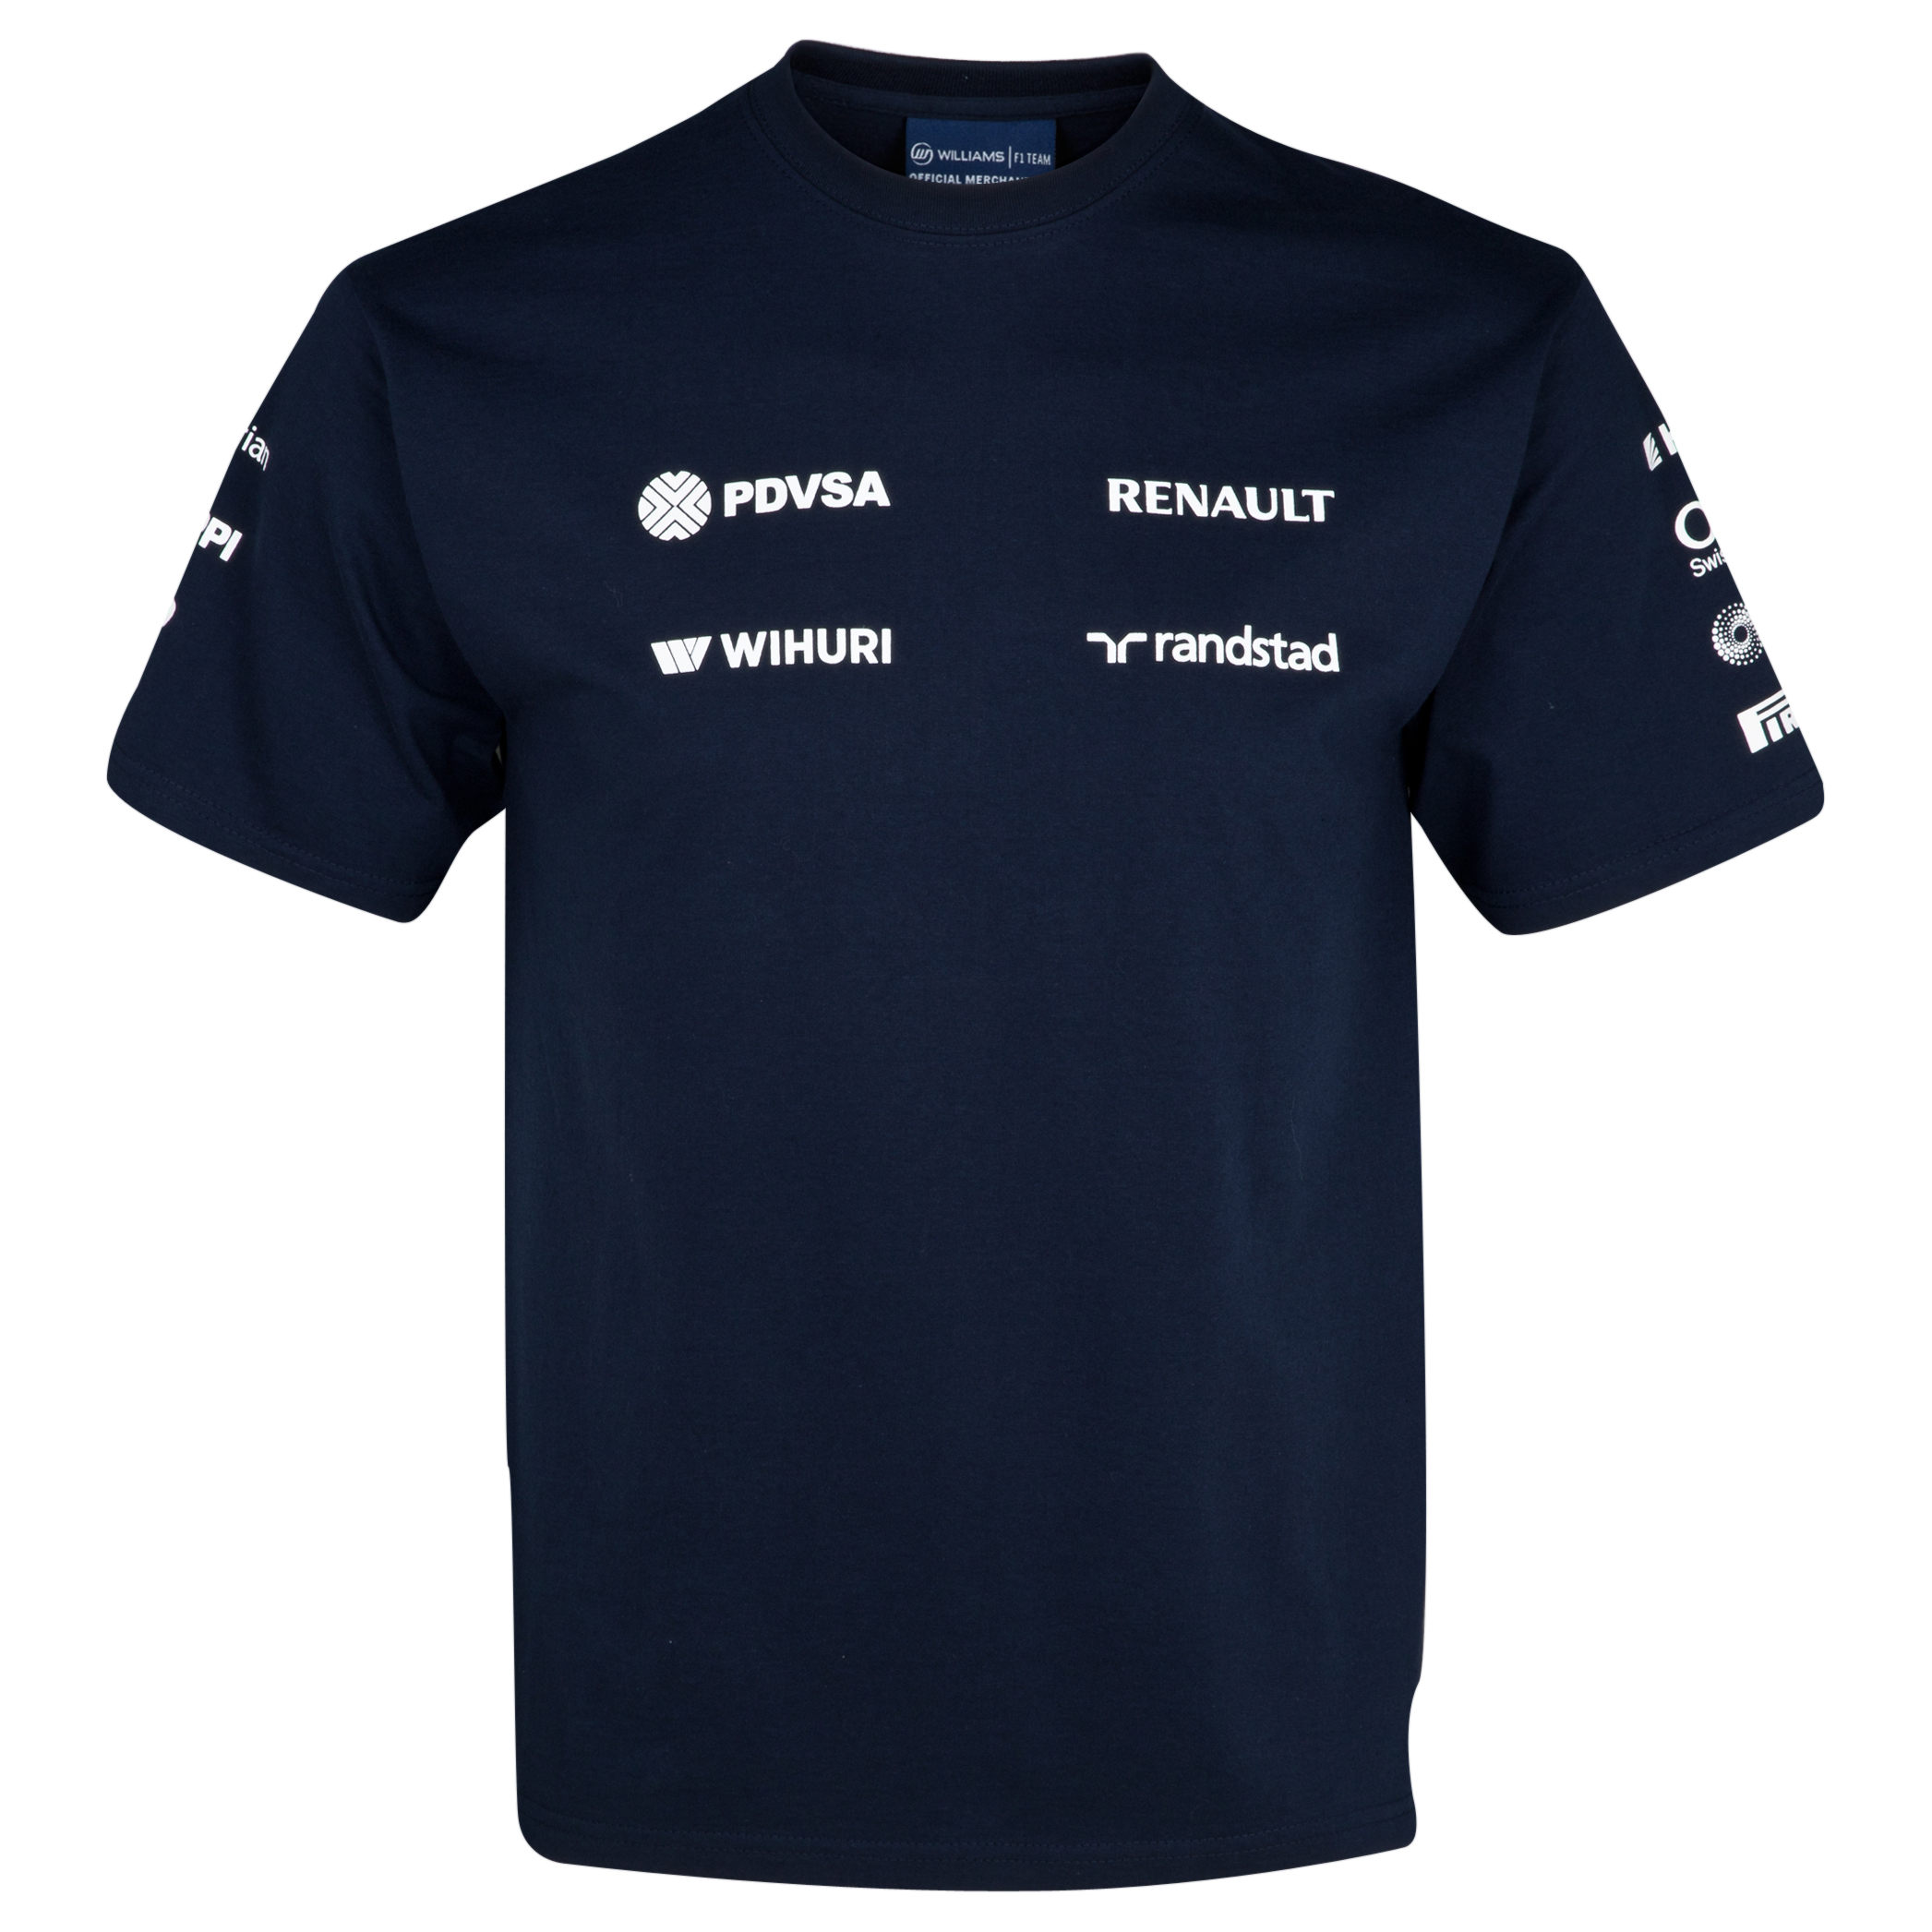 WILLIAMS F1 Team 2013 Sponsor T-Shirt